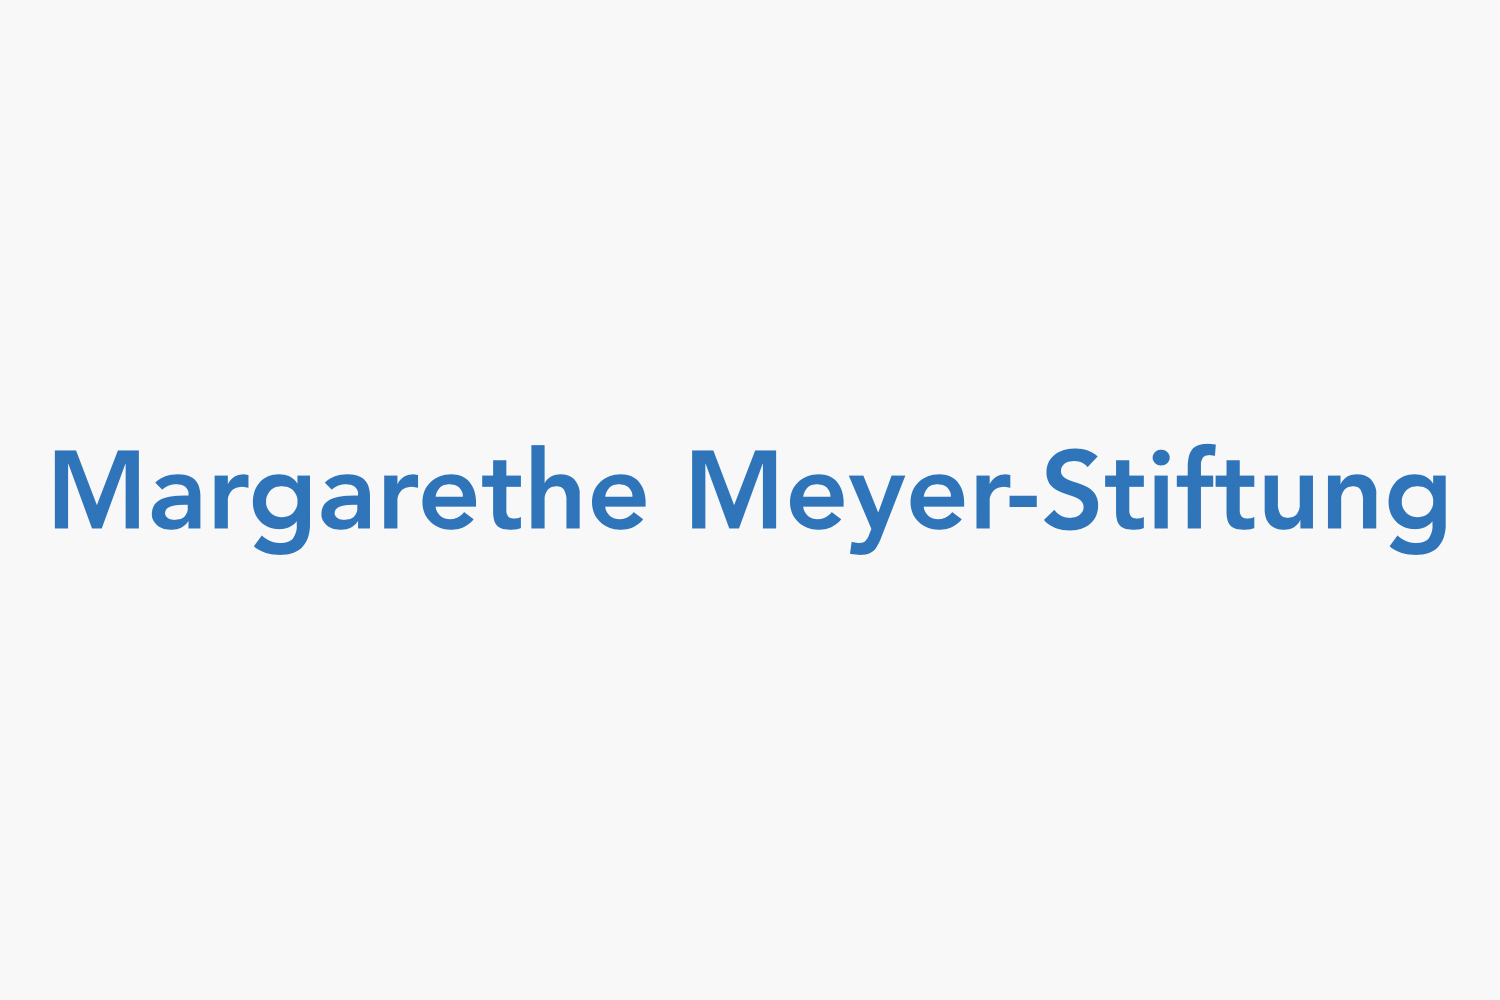 Website Search Optimization, SEO - Website and search engine optimization for the Social Foundation for Schwyz and Basel-City Margarethe Meyer Foundation .